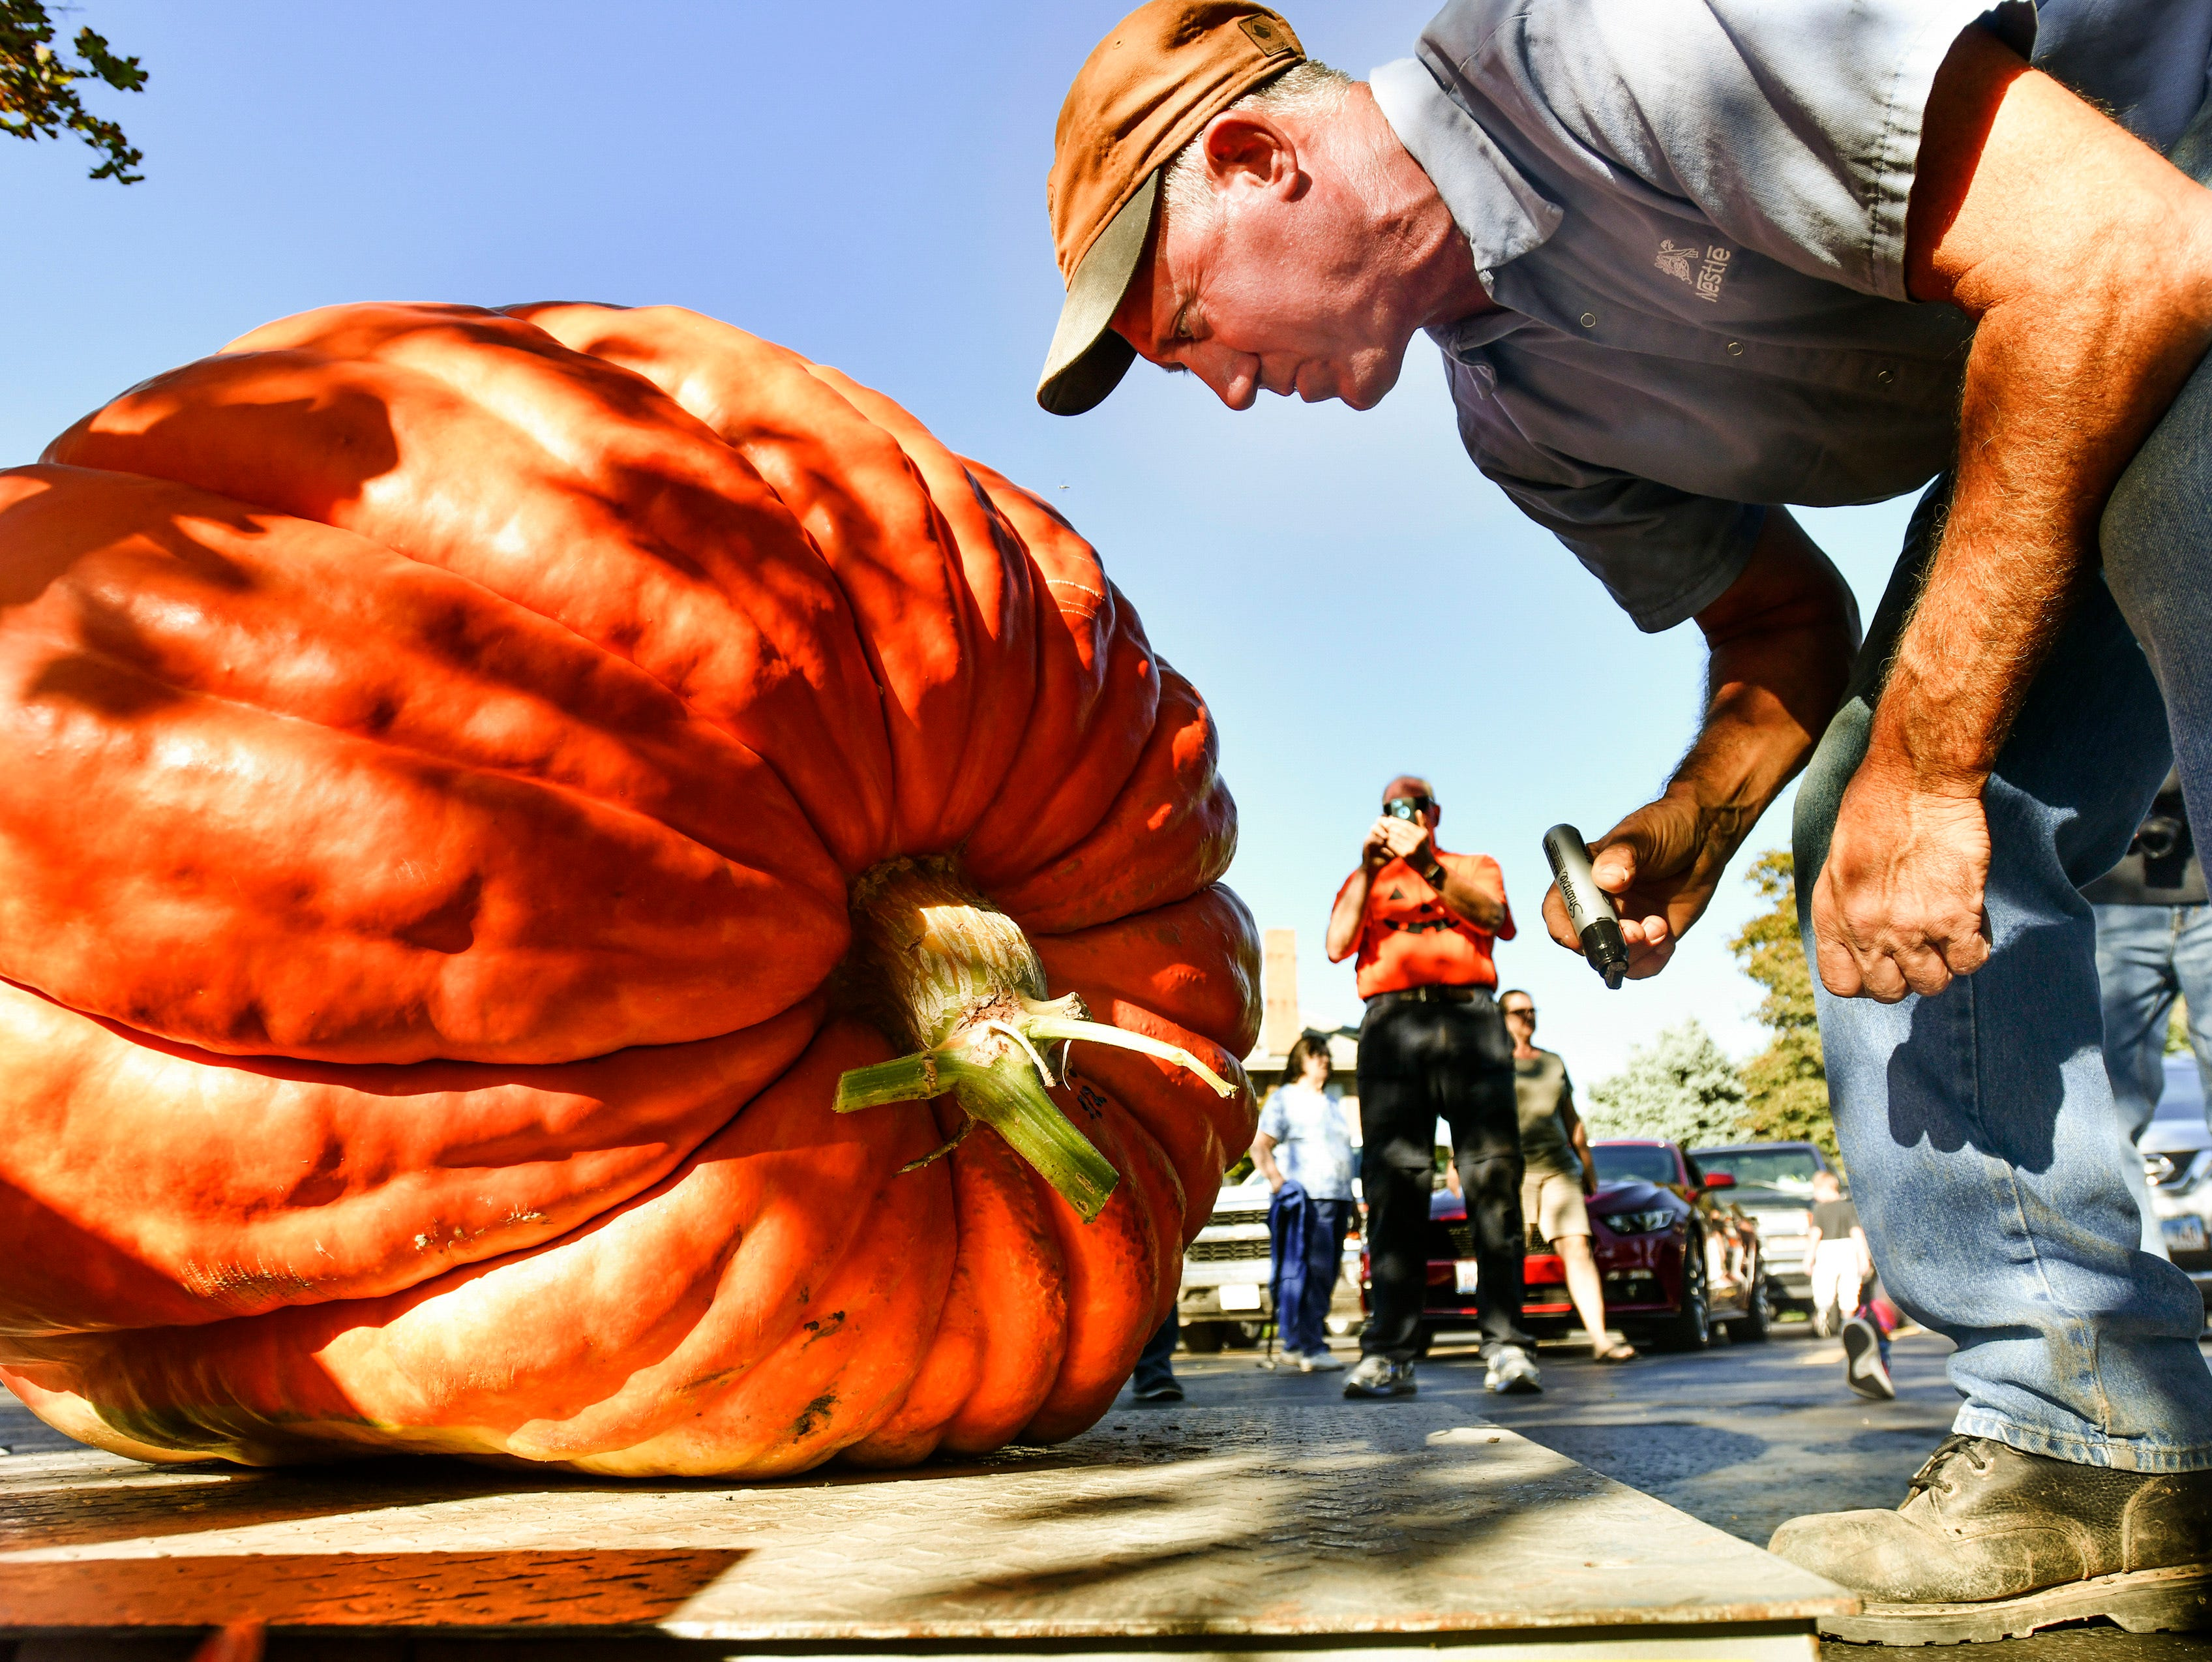 Jim Ackerman of Morton, Ill., marks the largest of the pumpkins weighed at the Morton Pumpkin Festival Pumpkin Weigh Off in Morton, Ill., on Tuesday, Sept.11, 2018. Joe House of Princeville, Ill., took top prize with the largest pumpkin, tipping the scale at 532 pounds.